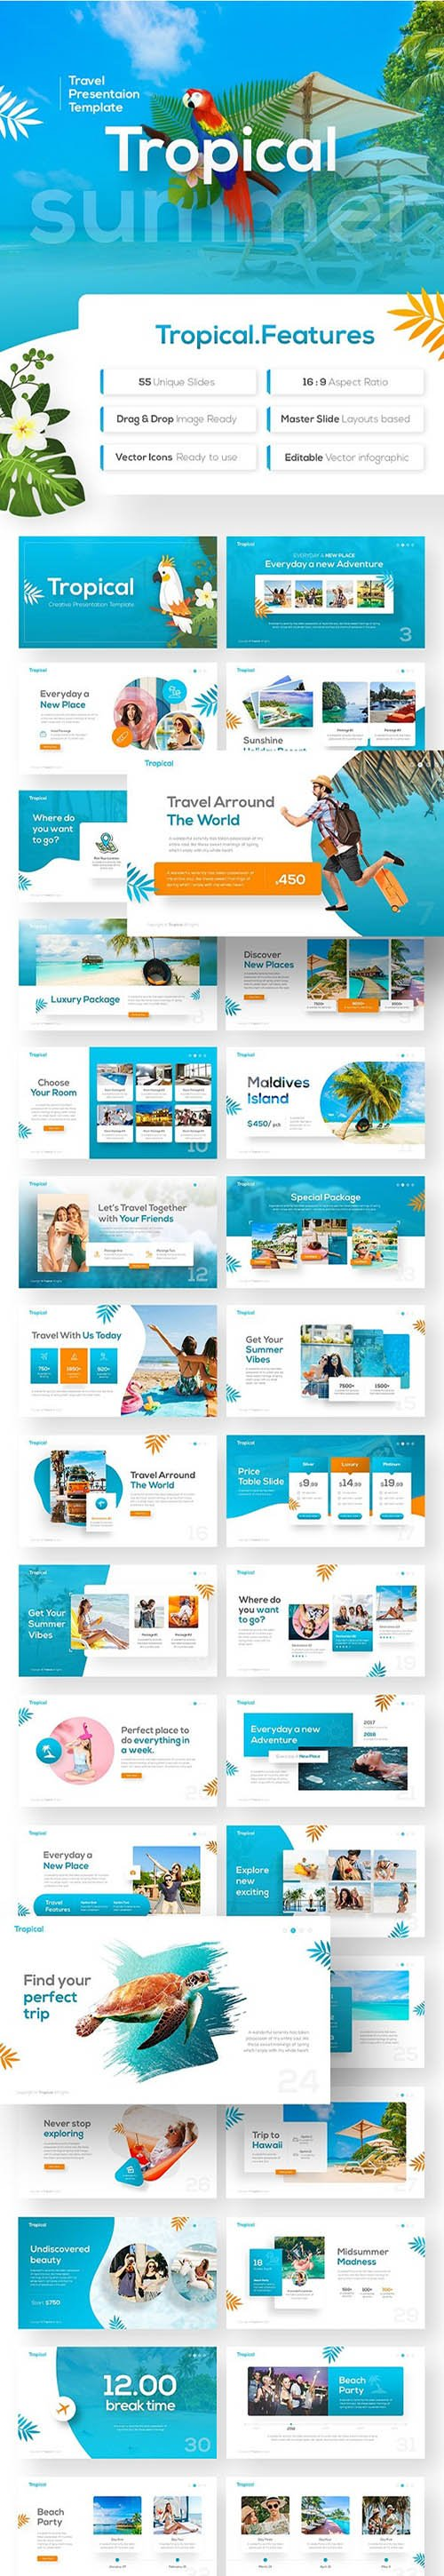 Tropical Travel Presentation Template 22733329